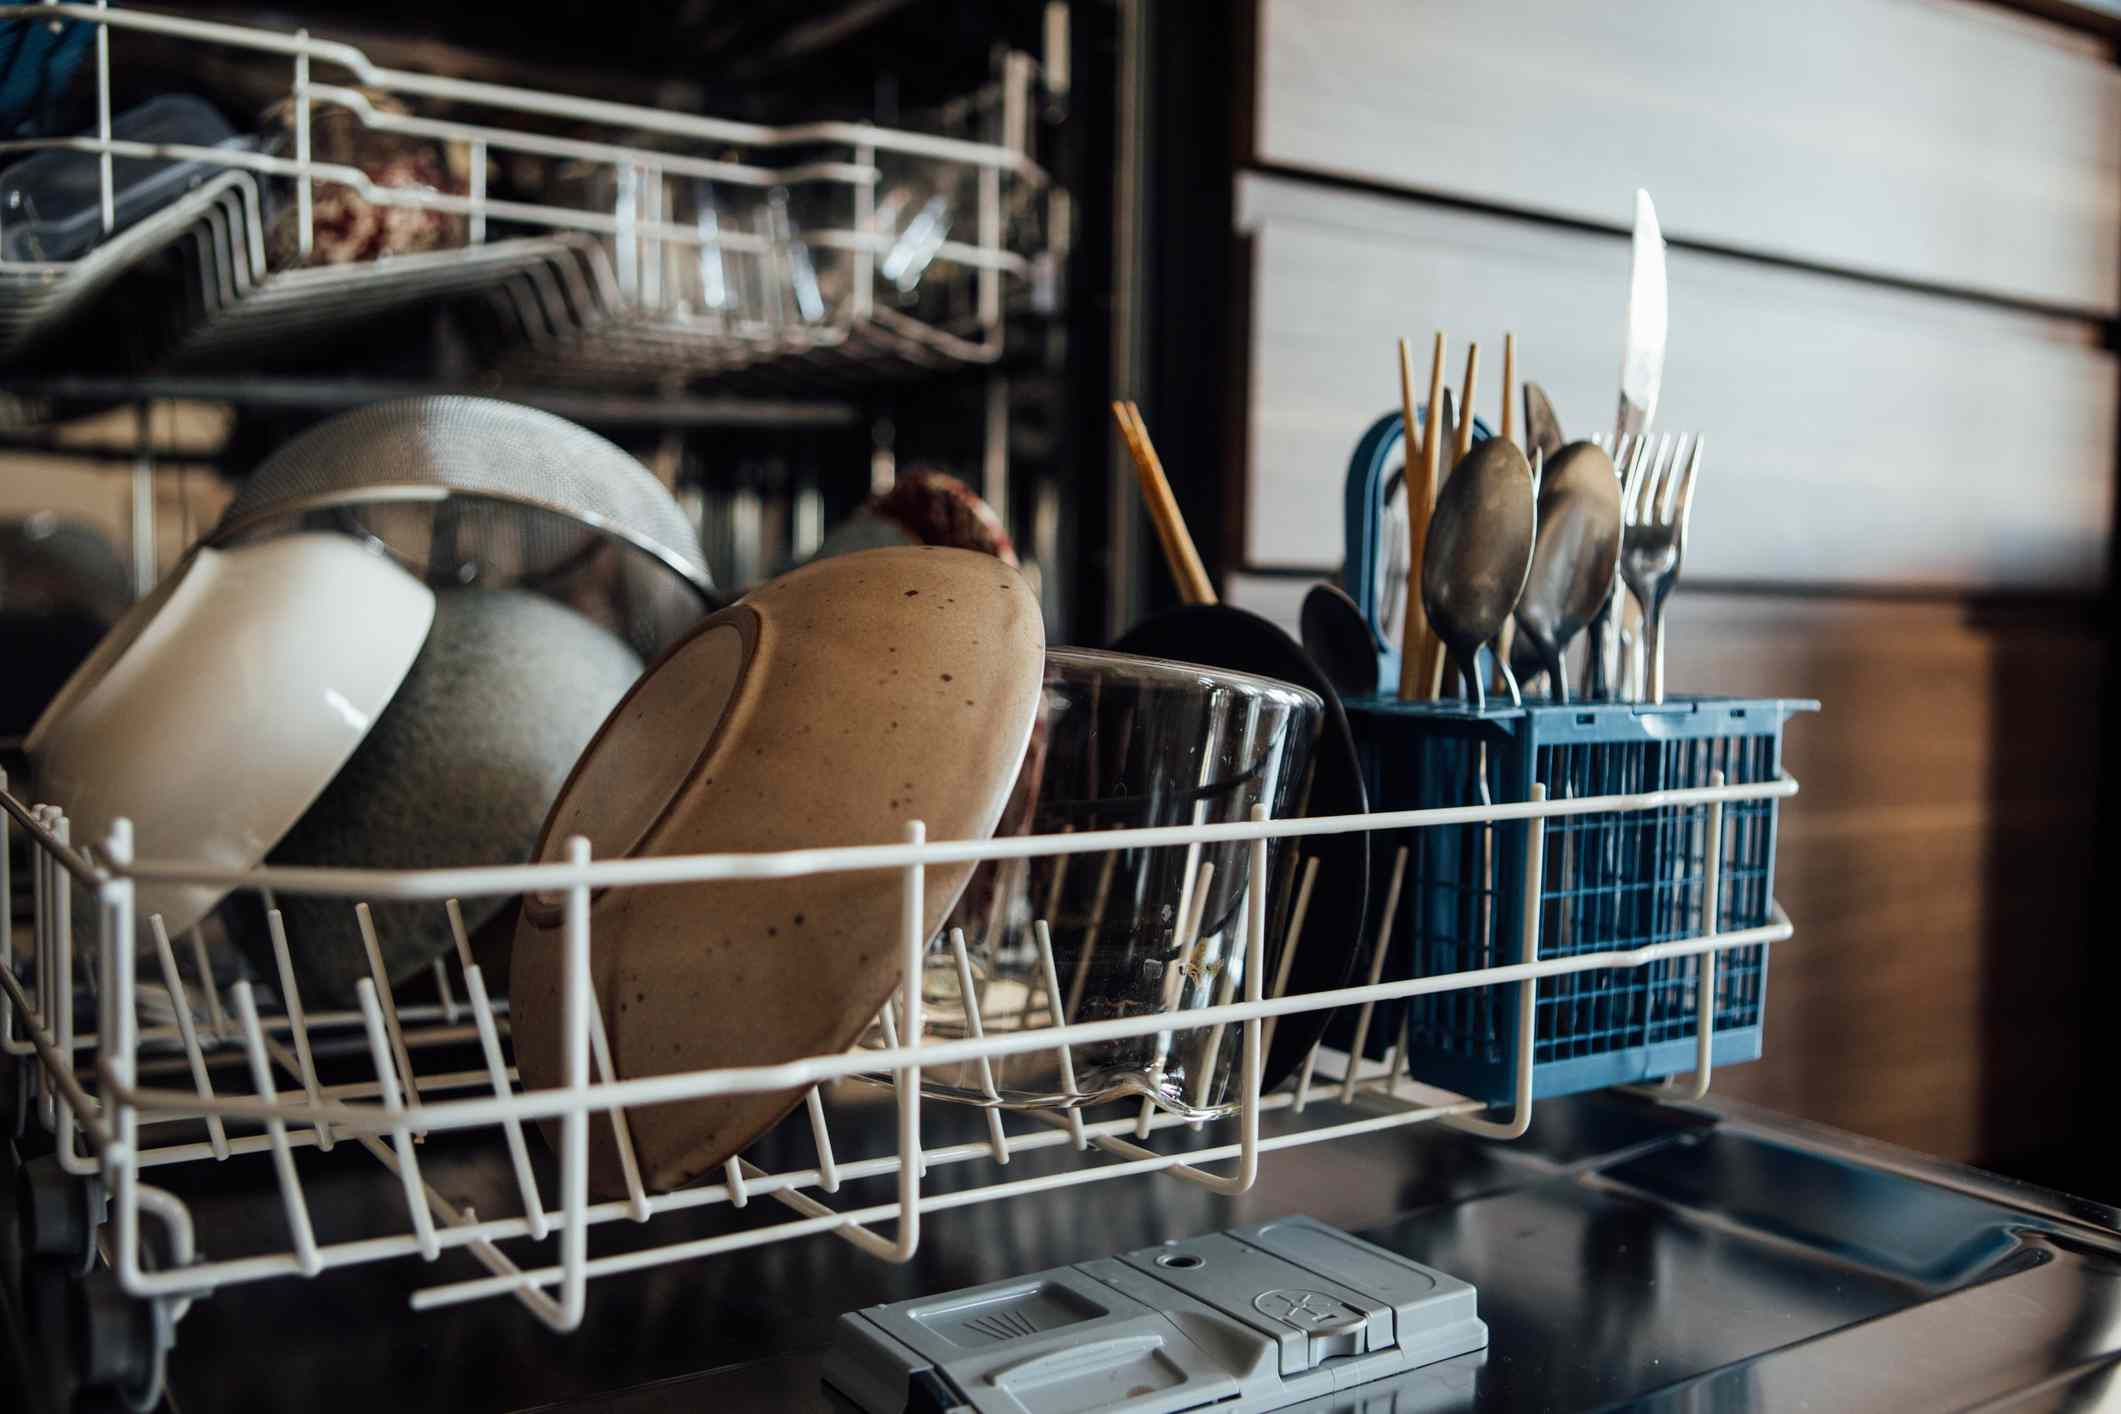 A closeup of the bottom rack of a dishwasher